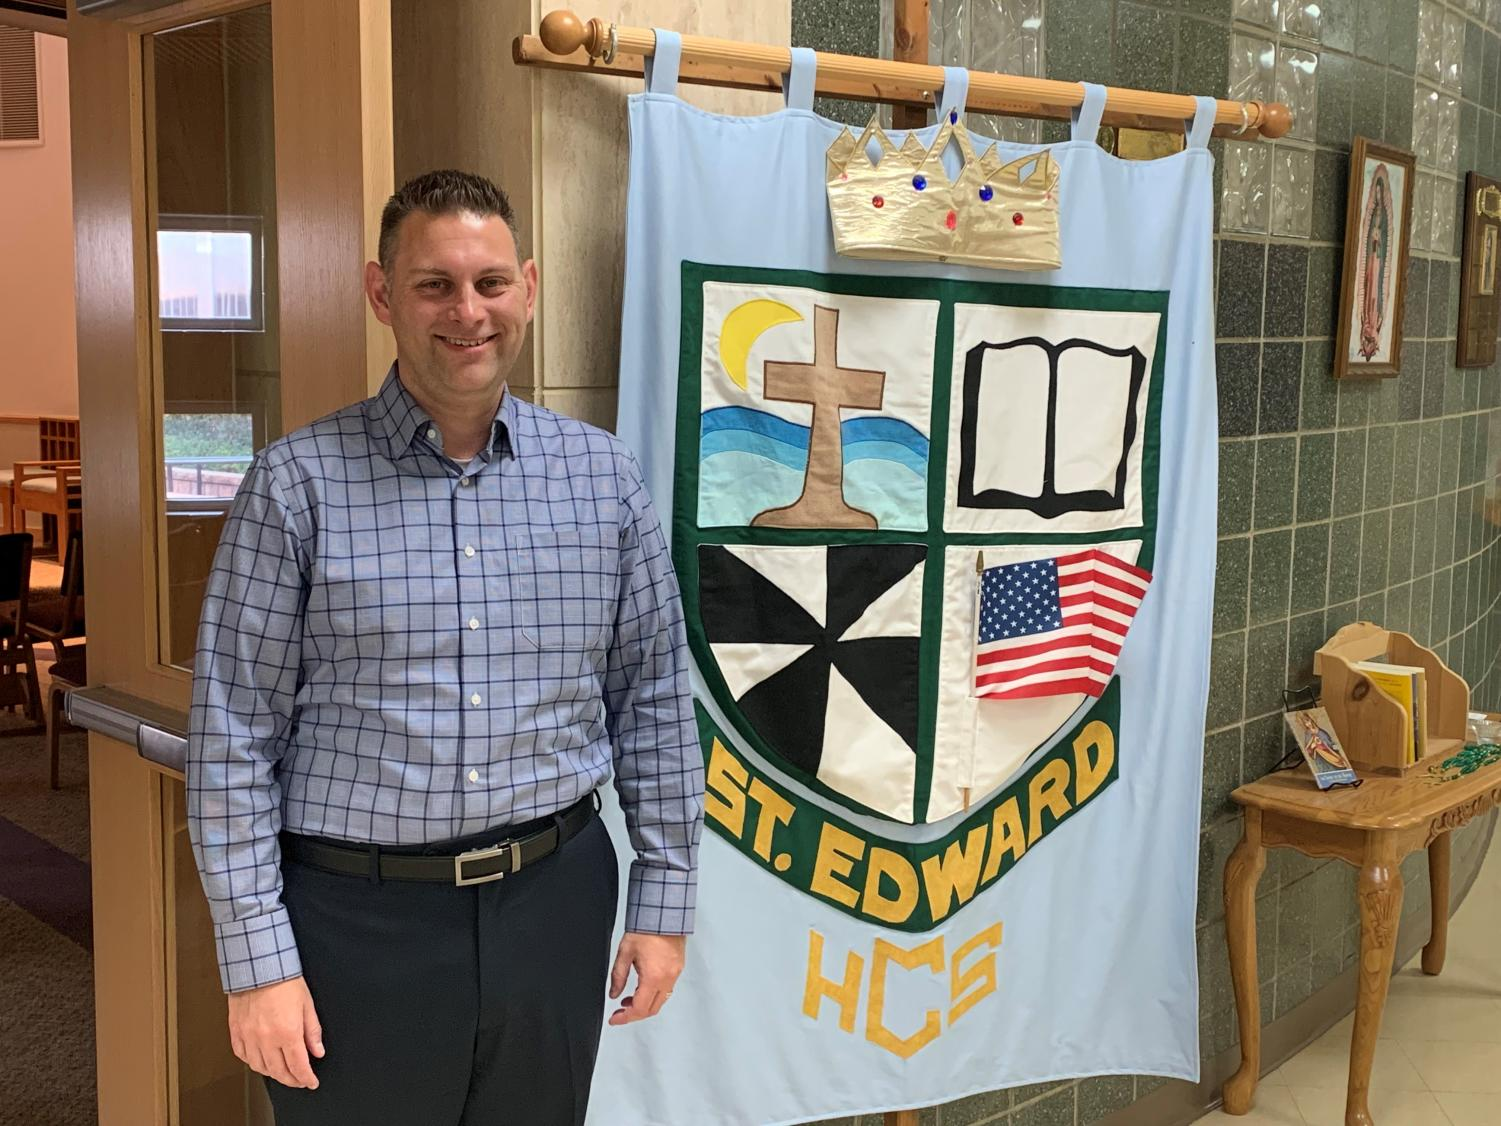 Mr. Tekampe is enjoying his first month as the new principal at St. Edward.